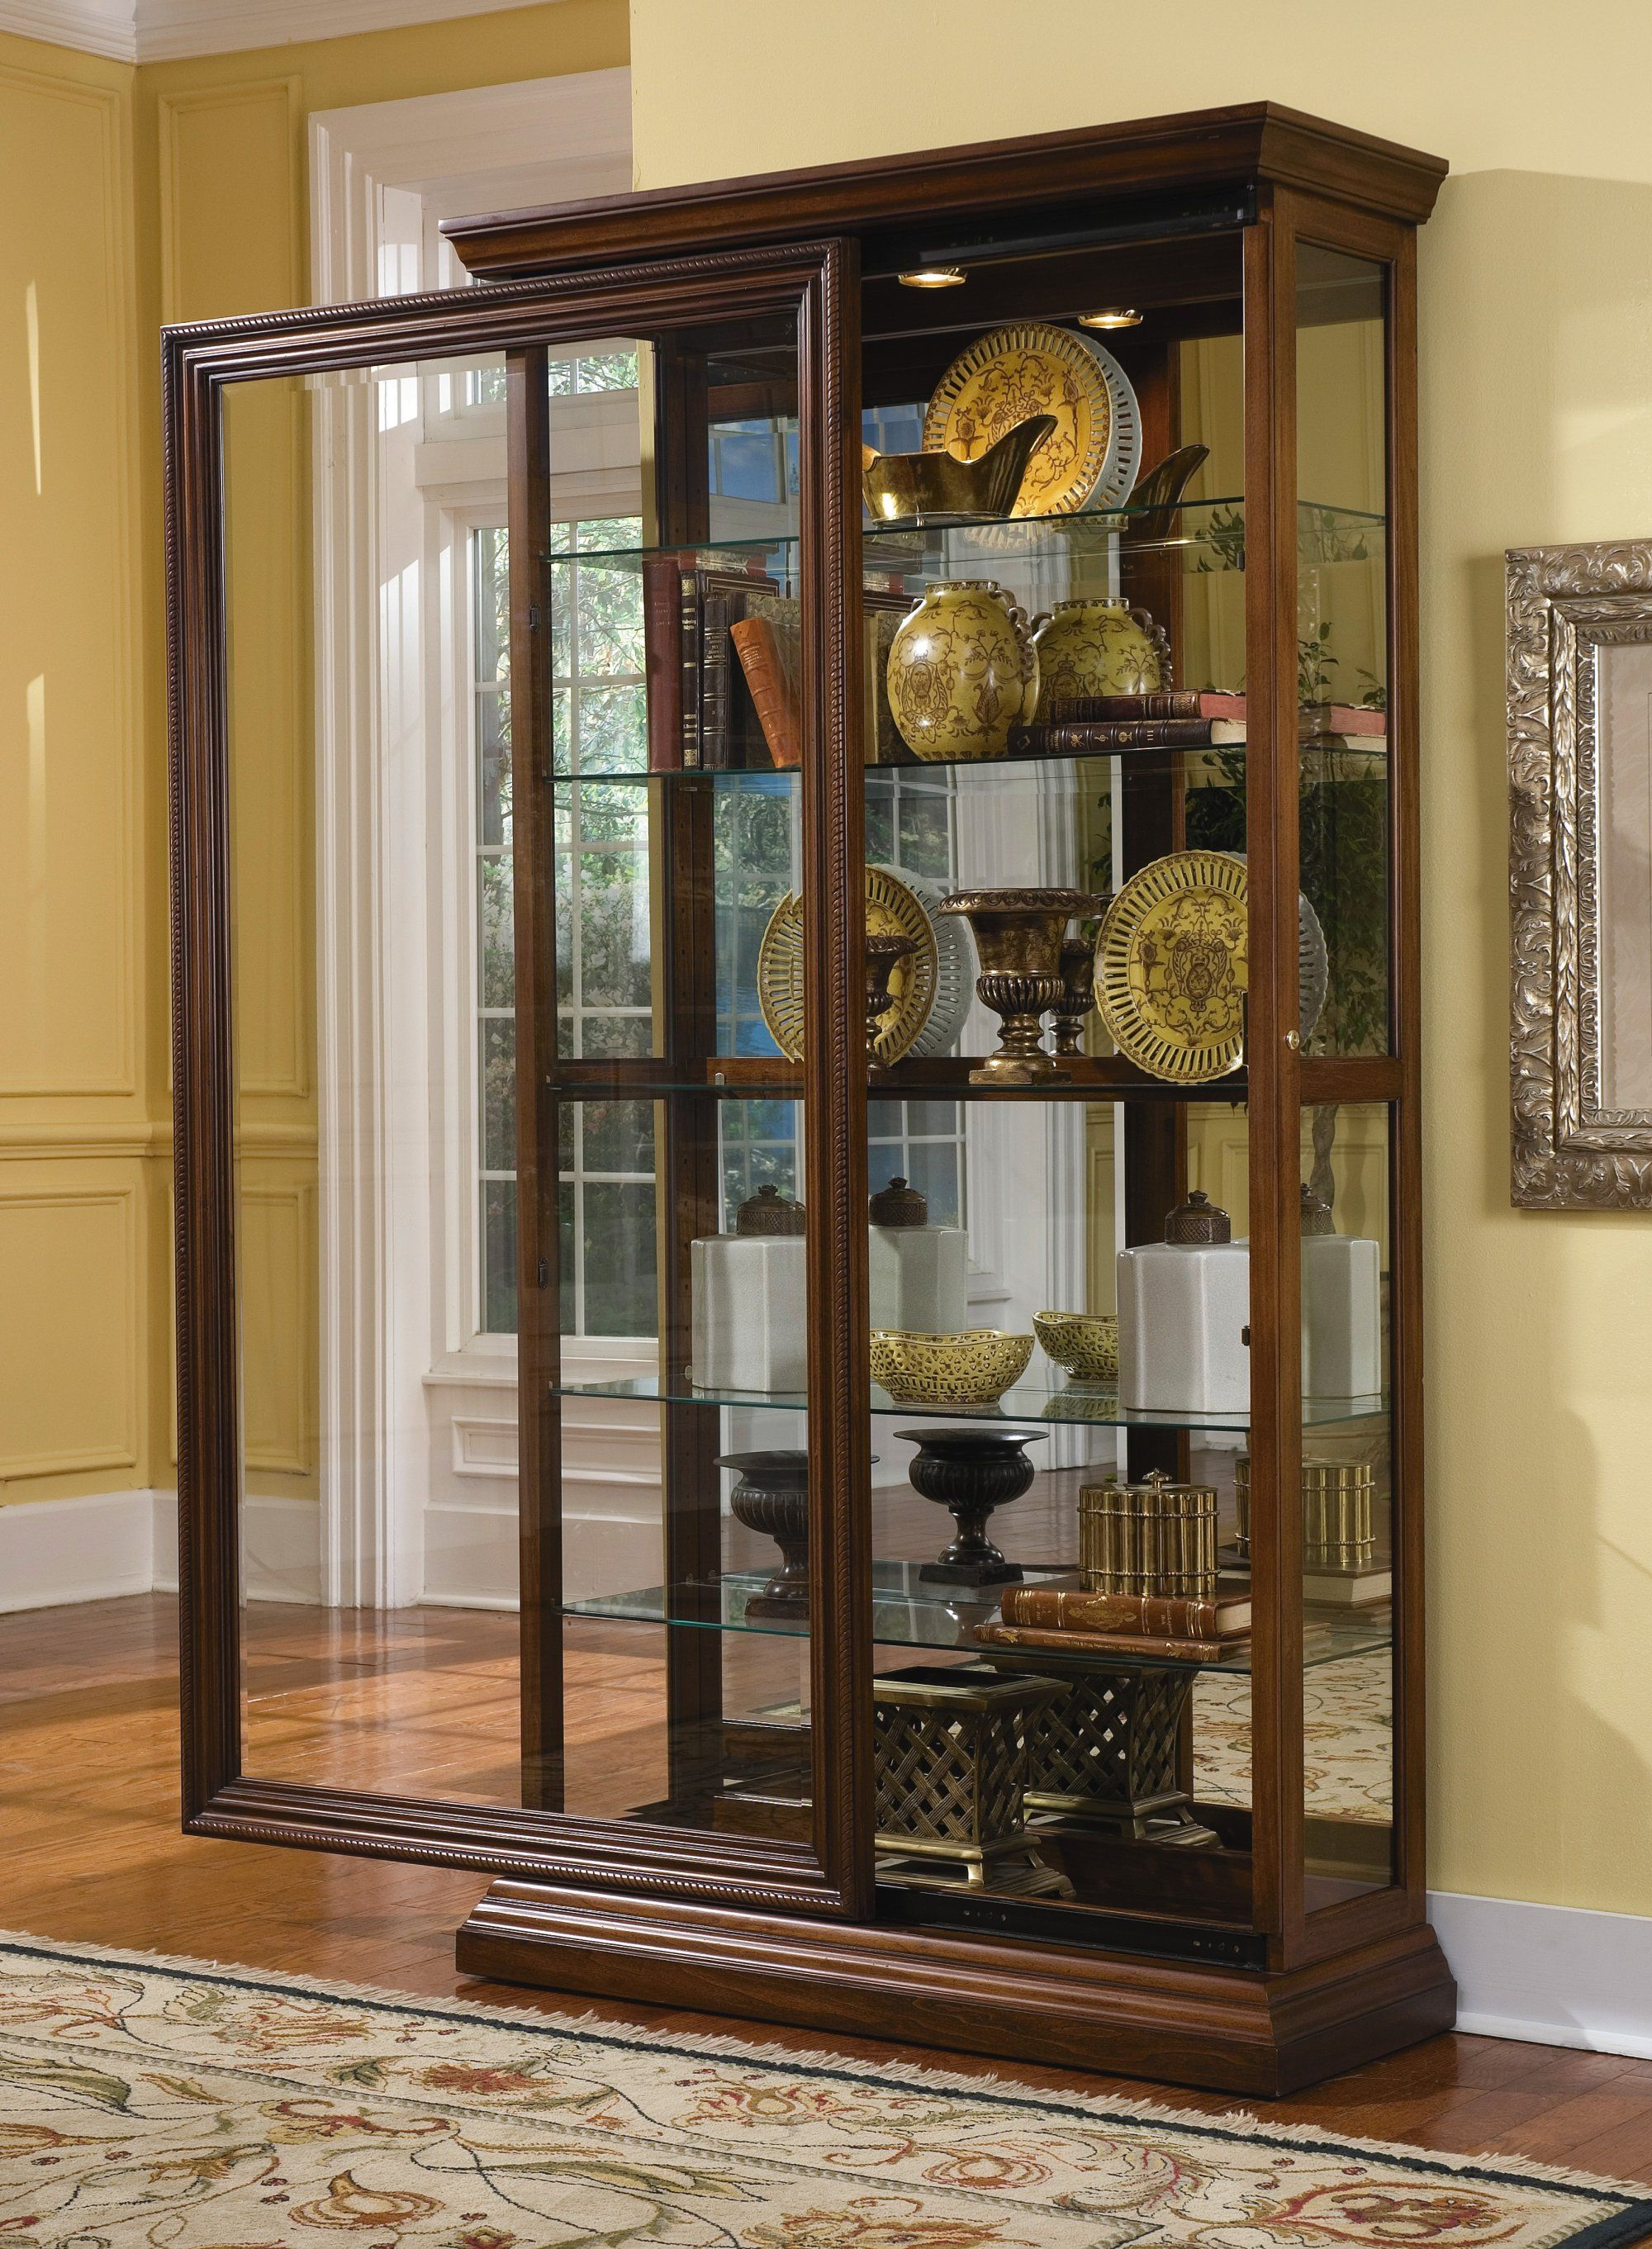 Plans to build Curio Cabinets Plans PDF download Curio cabinets ...